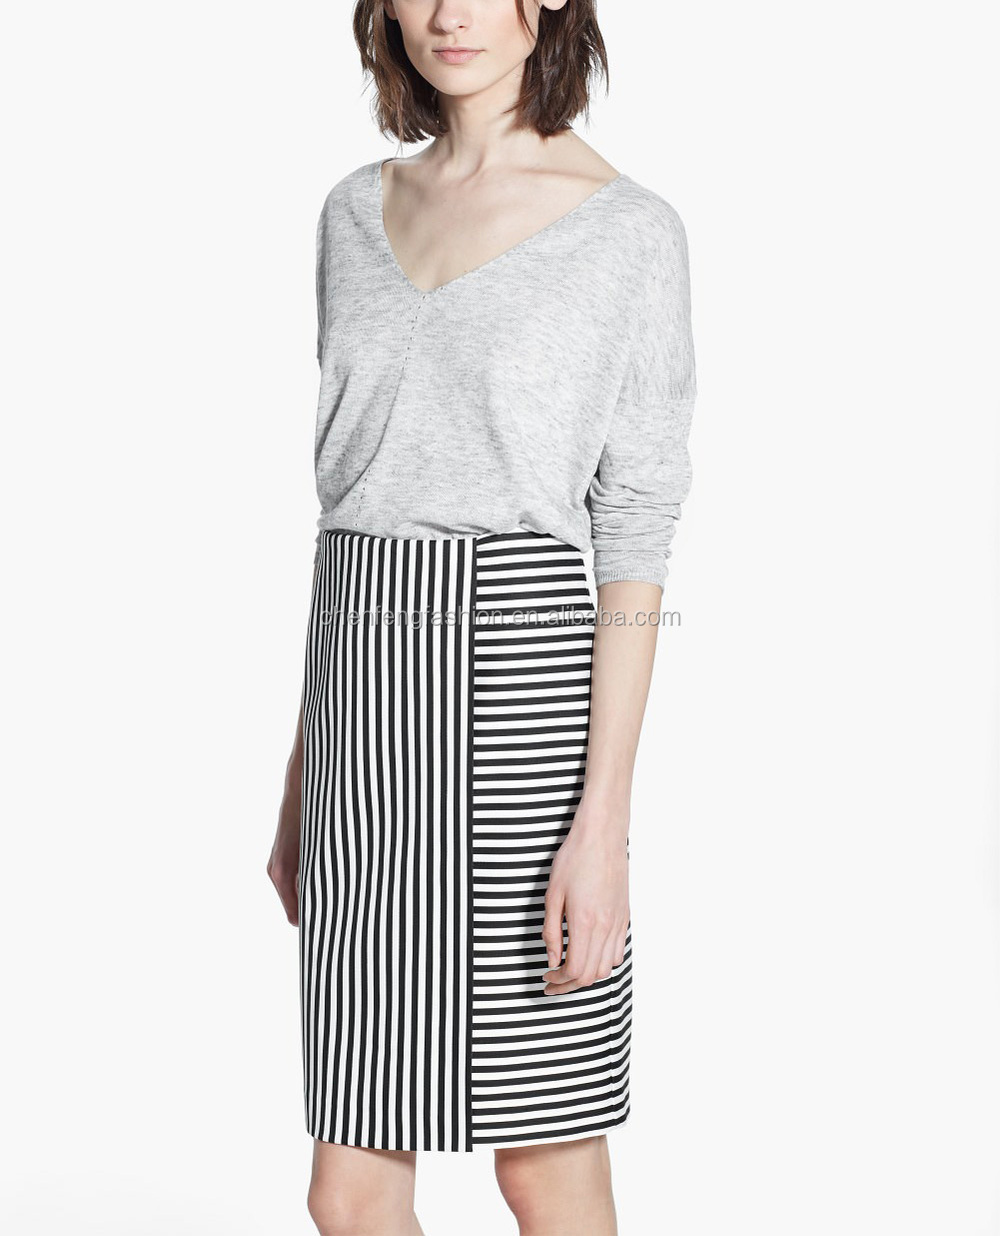 Ladies Working Skirt, Ladies Working Skirt Suppliers and ...